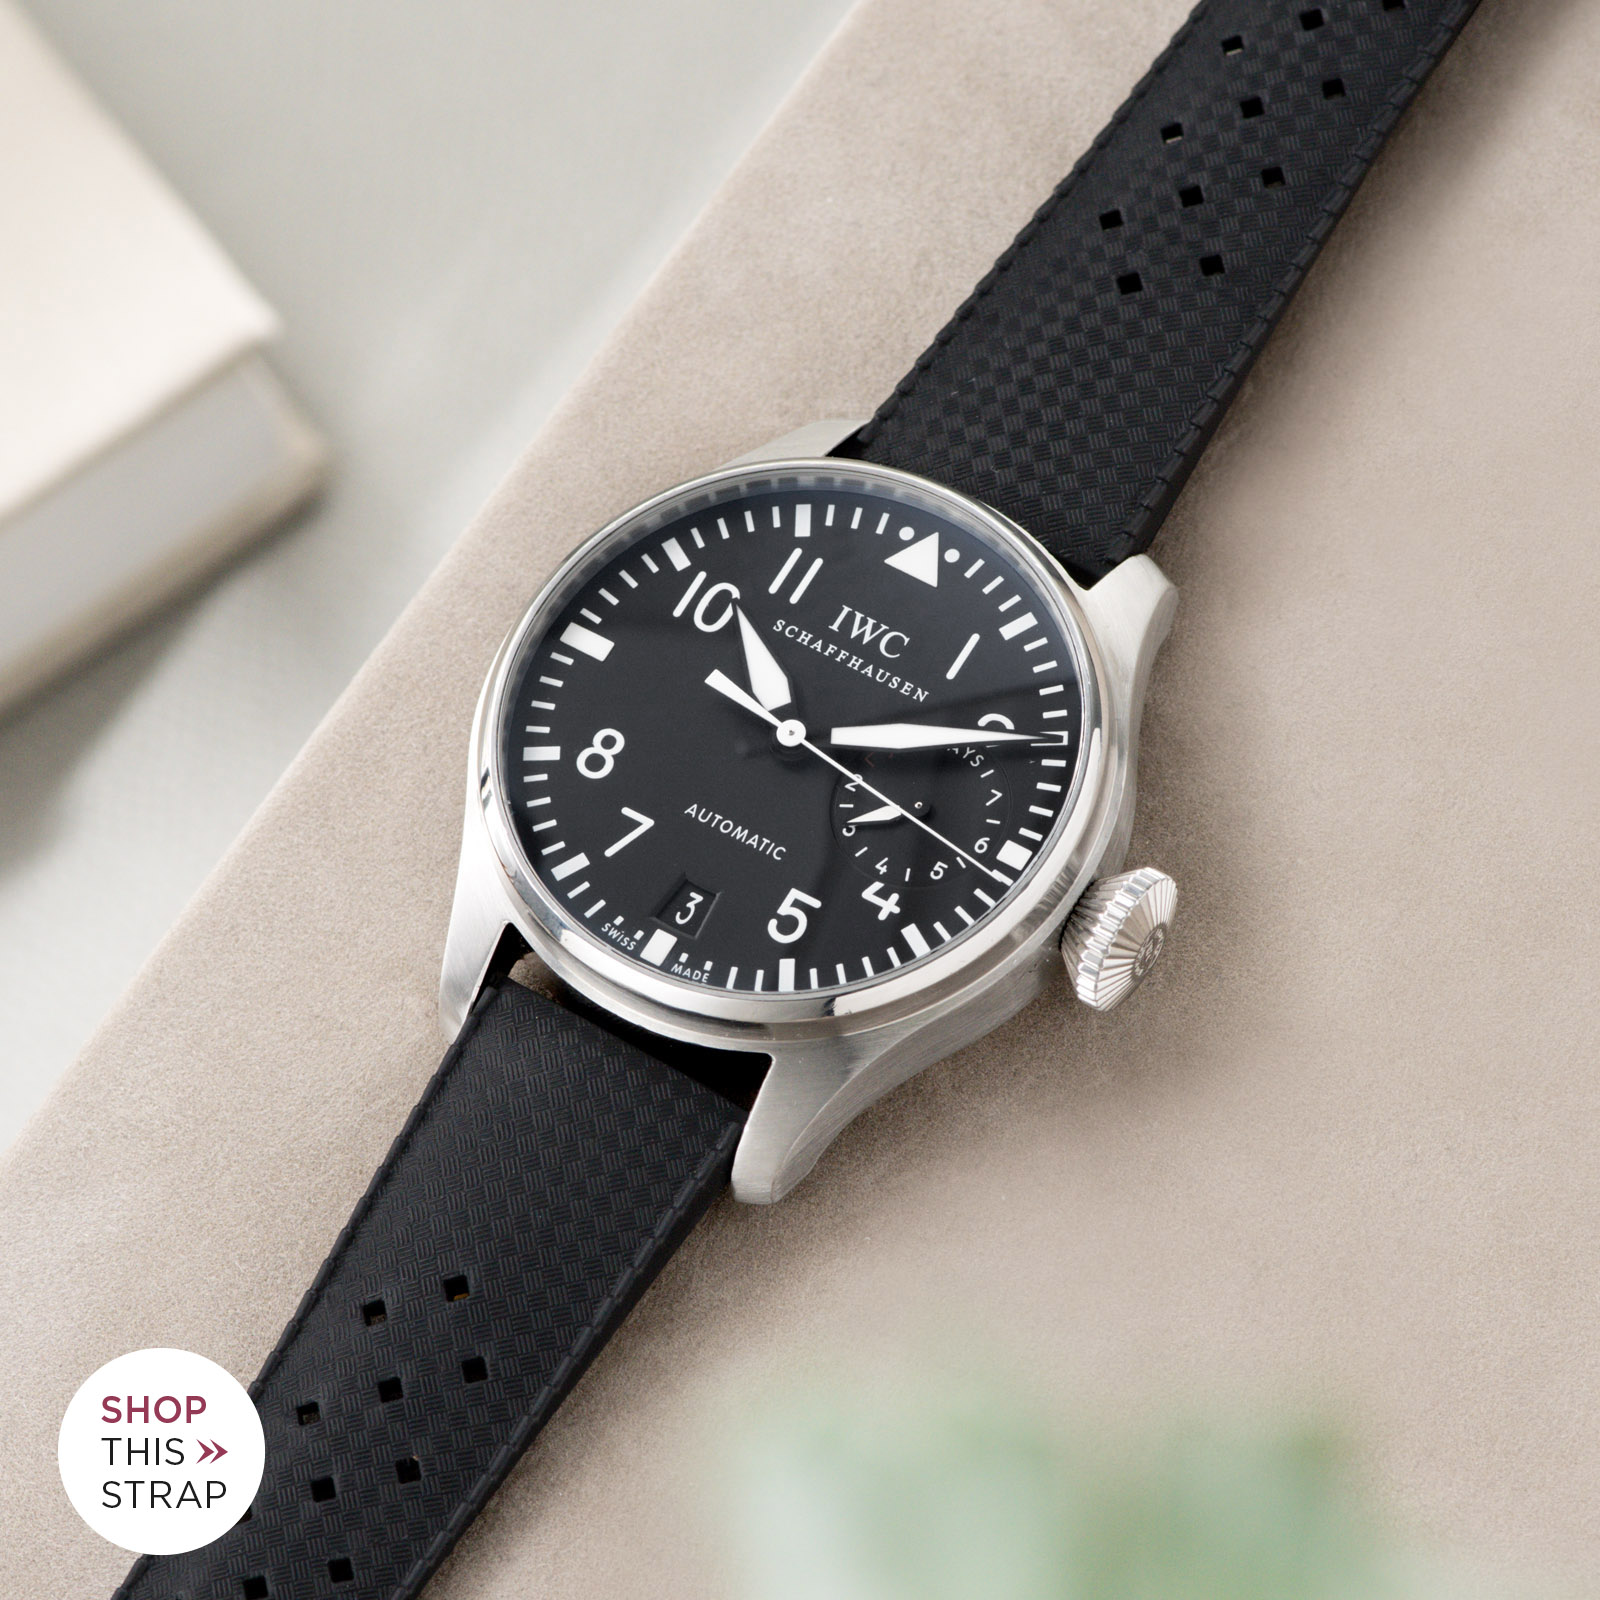 Bulang and Sons_Strap Guide_IWC Big Pilot ref IW5004_Nautic Basket Weave Black Rubber Style Watch Strap